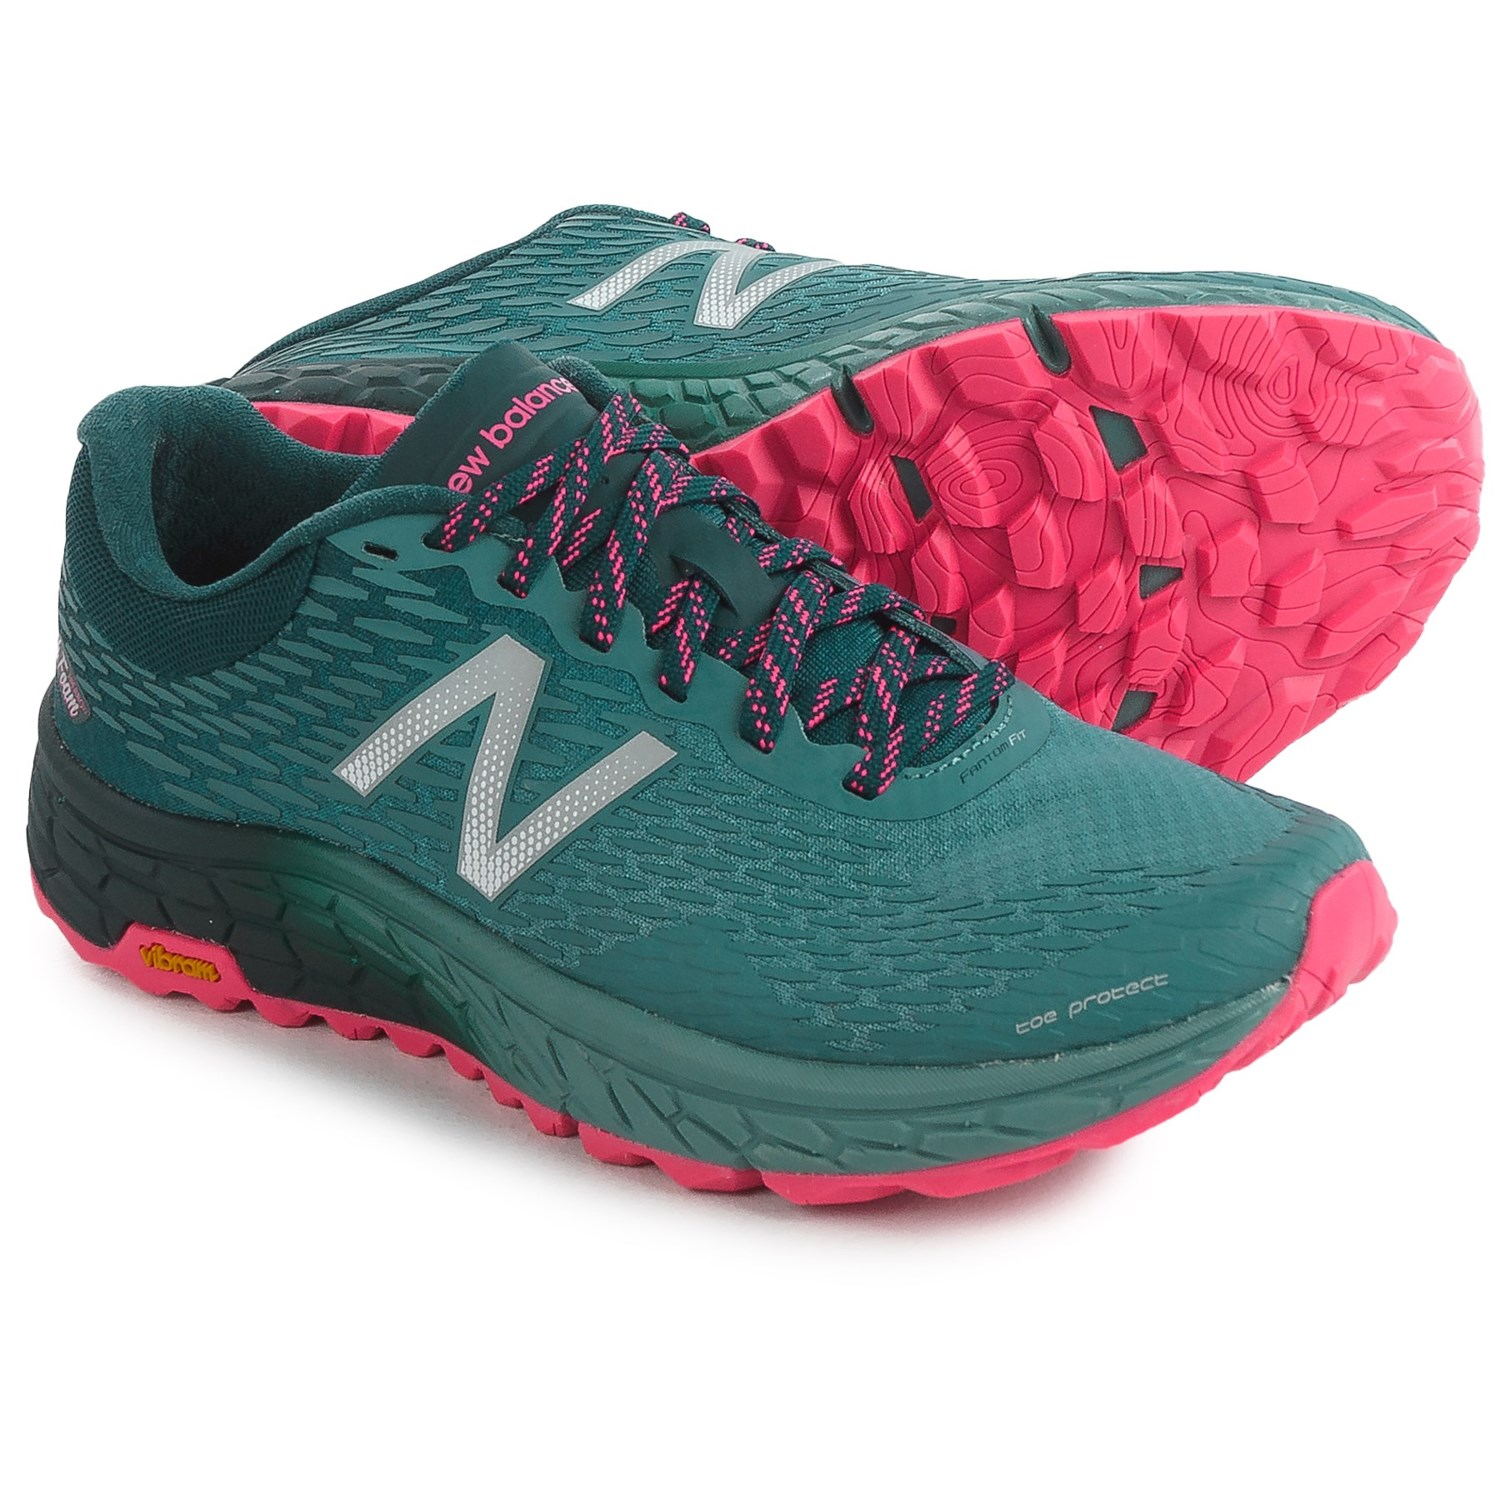 new-balance-fresh-foam-hierro-v2-trail-running-shoes-for-women-in-typhoon-supercell-alpha-pink-p-245fk_01-1500.2